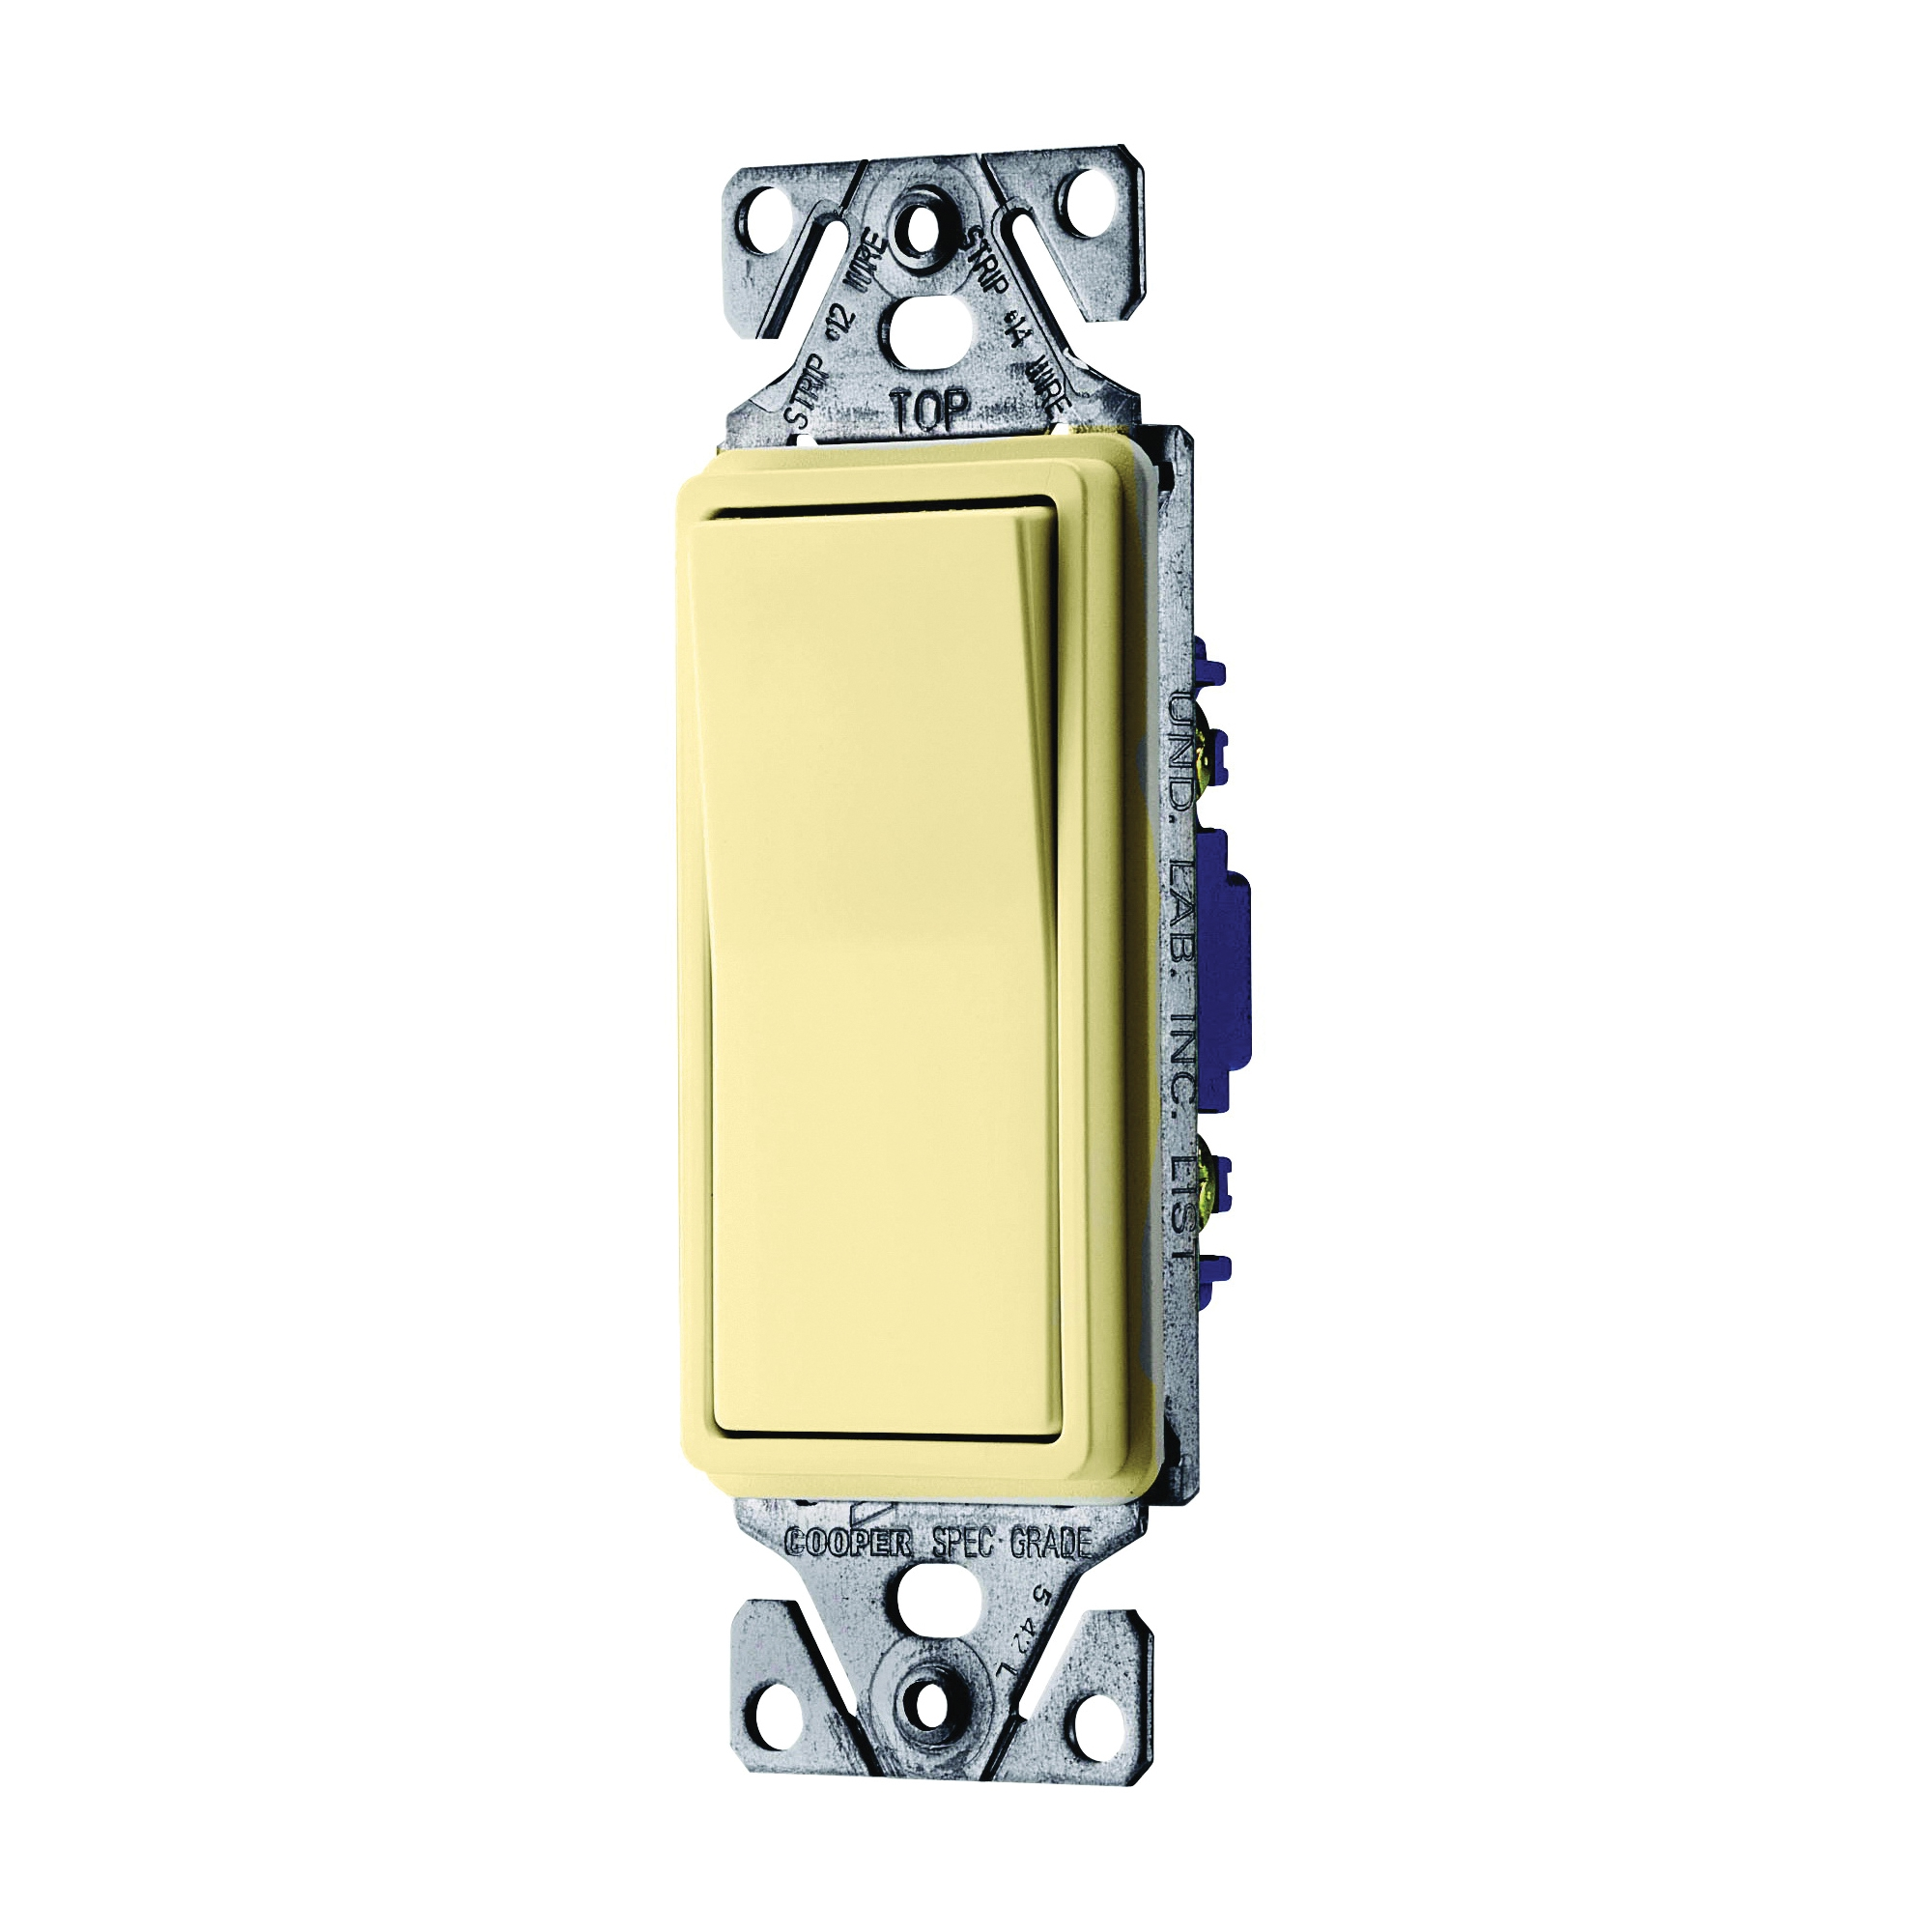 Picture of Eaton Wiring Devices 7500 Series C7503V-SP Rocker Switch, 15 A, 120/277 V, 3-Way, Lead Wire Terminal, Ivory